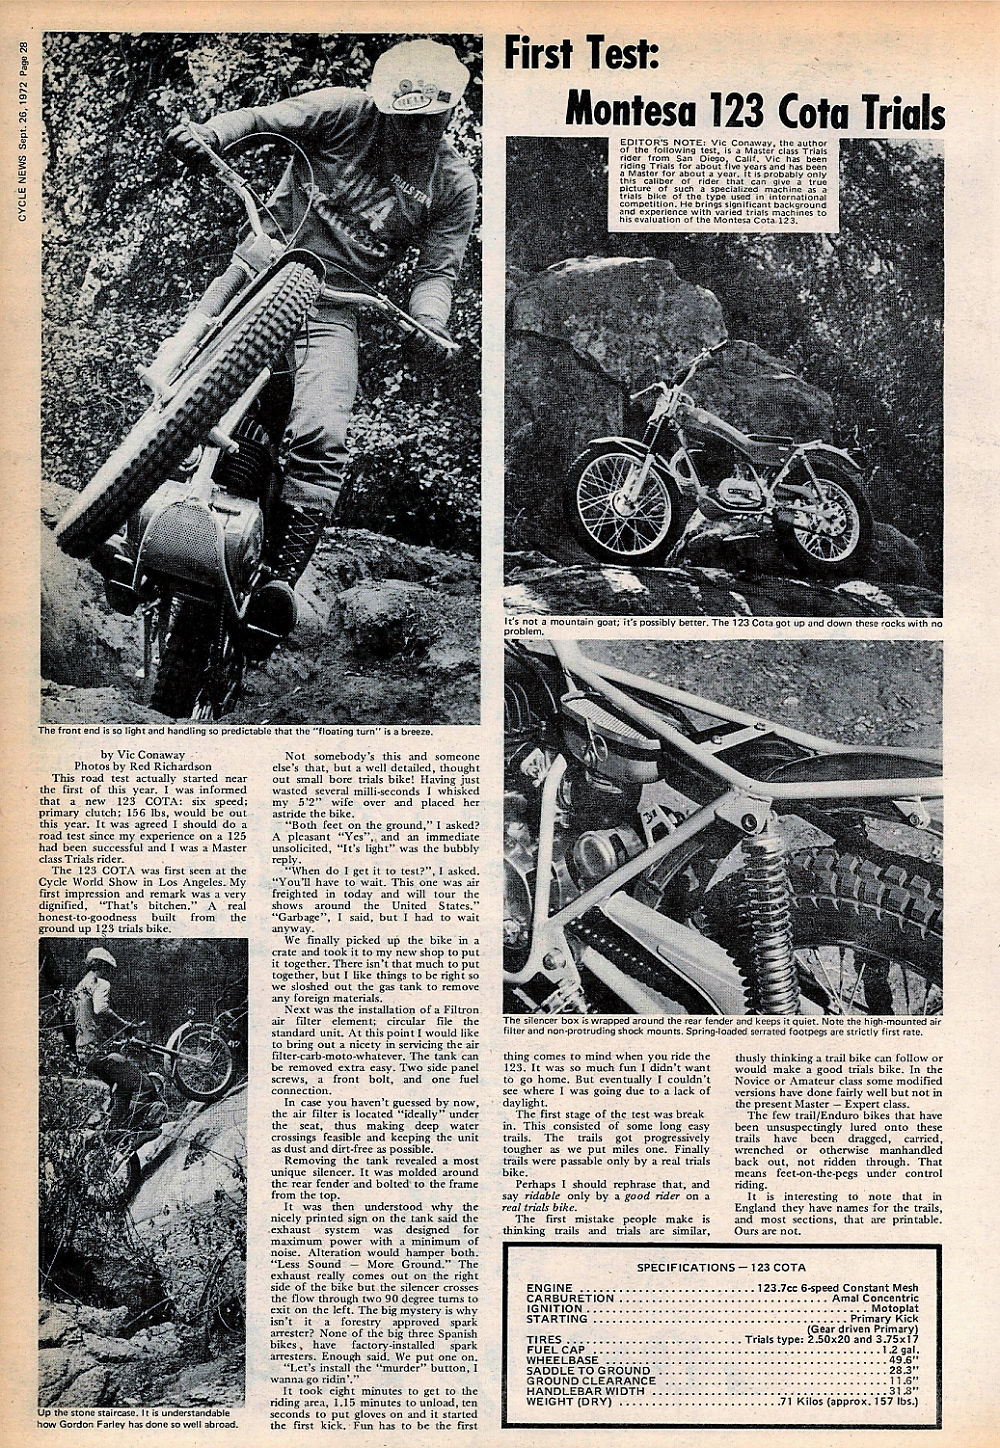 1972 Montesa 123 Cota Trials road test.1.jpg